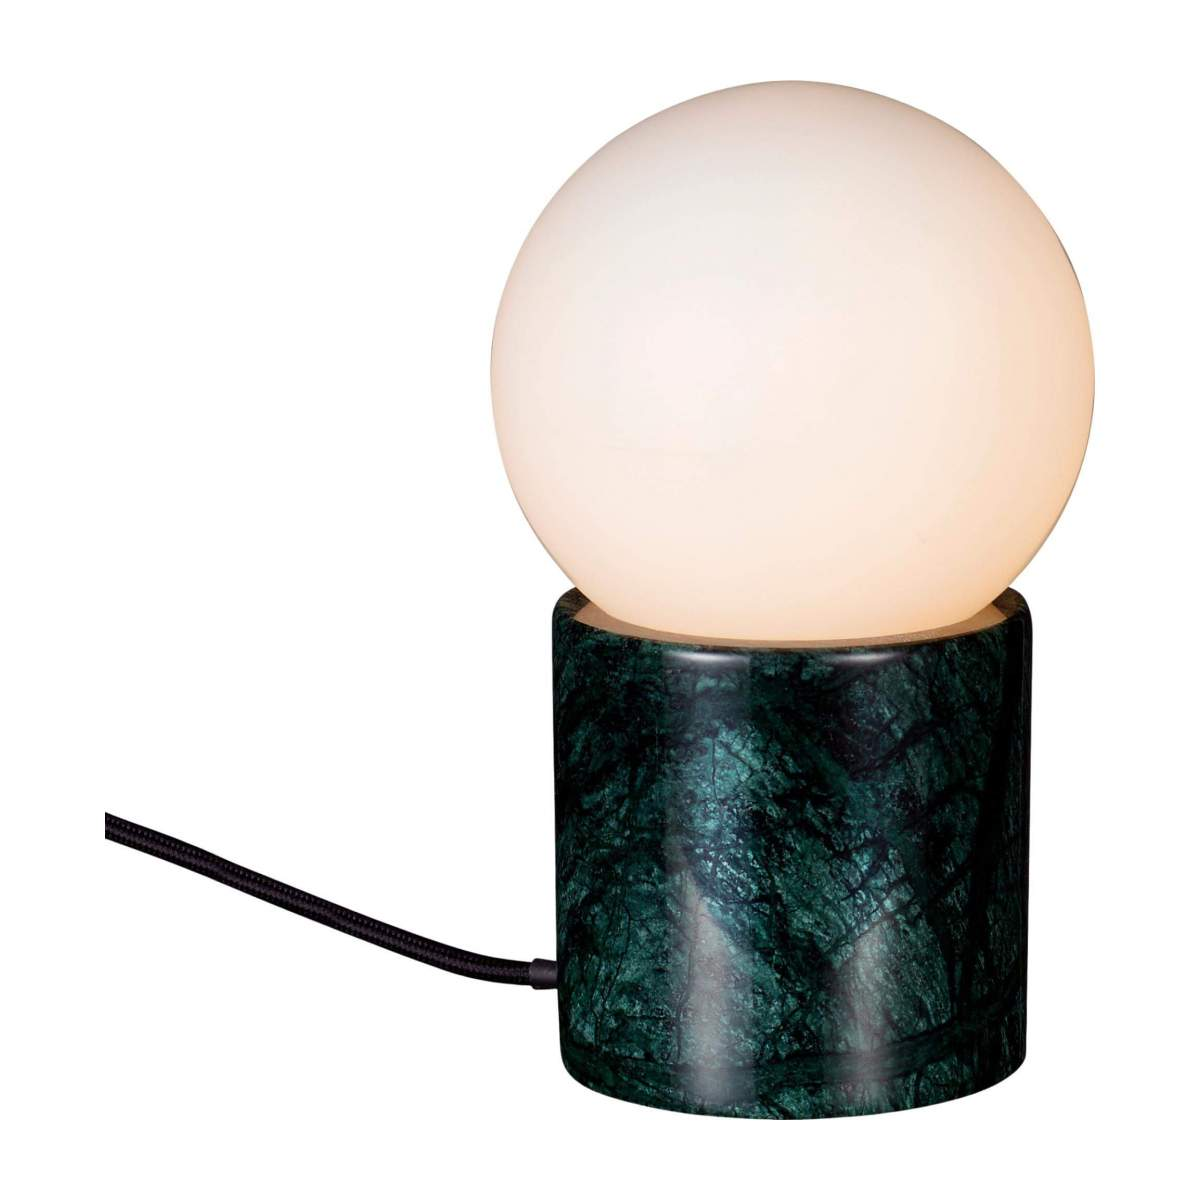 Lampe de table en marbre verre/Marble Table Lamp Green n°1